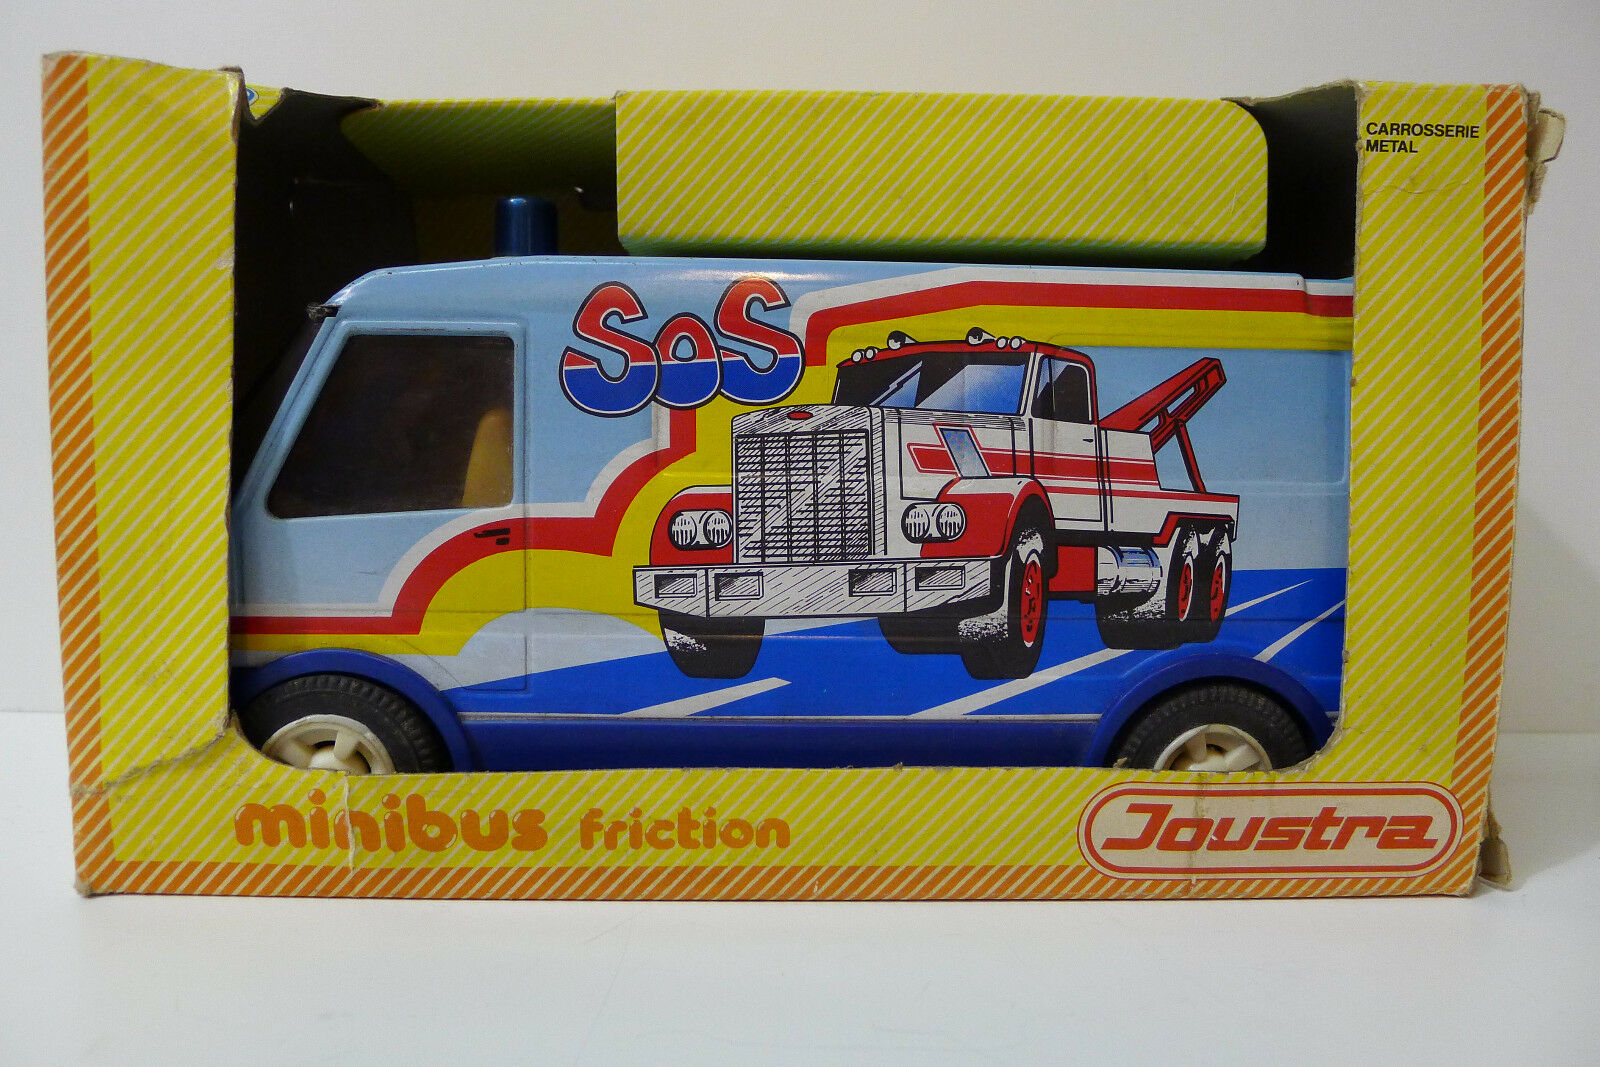 JOUSTRA MINI BUS A FRICTION REFERENCE 2526 MADE IN FRANCE